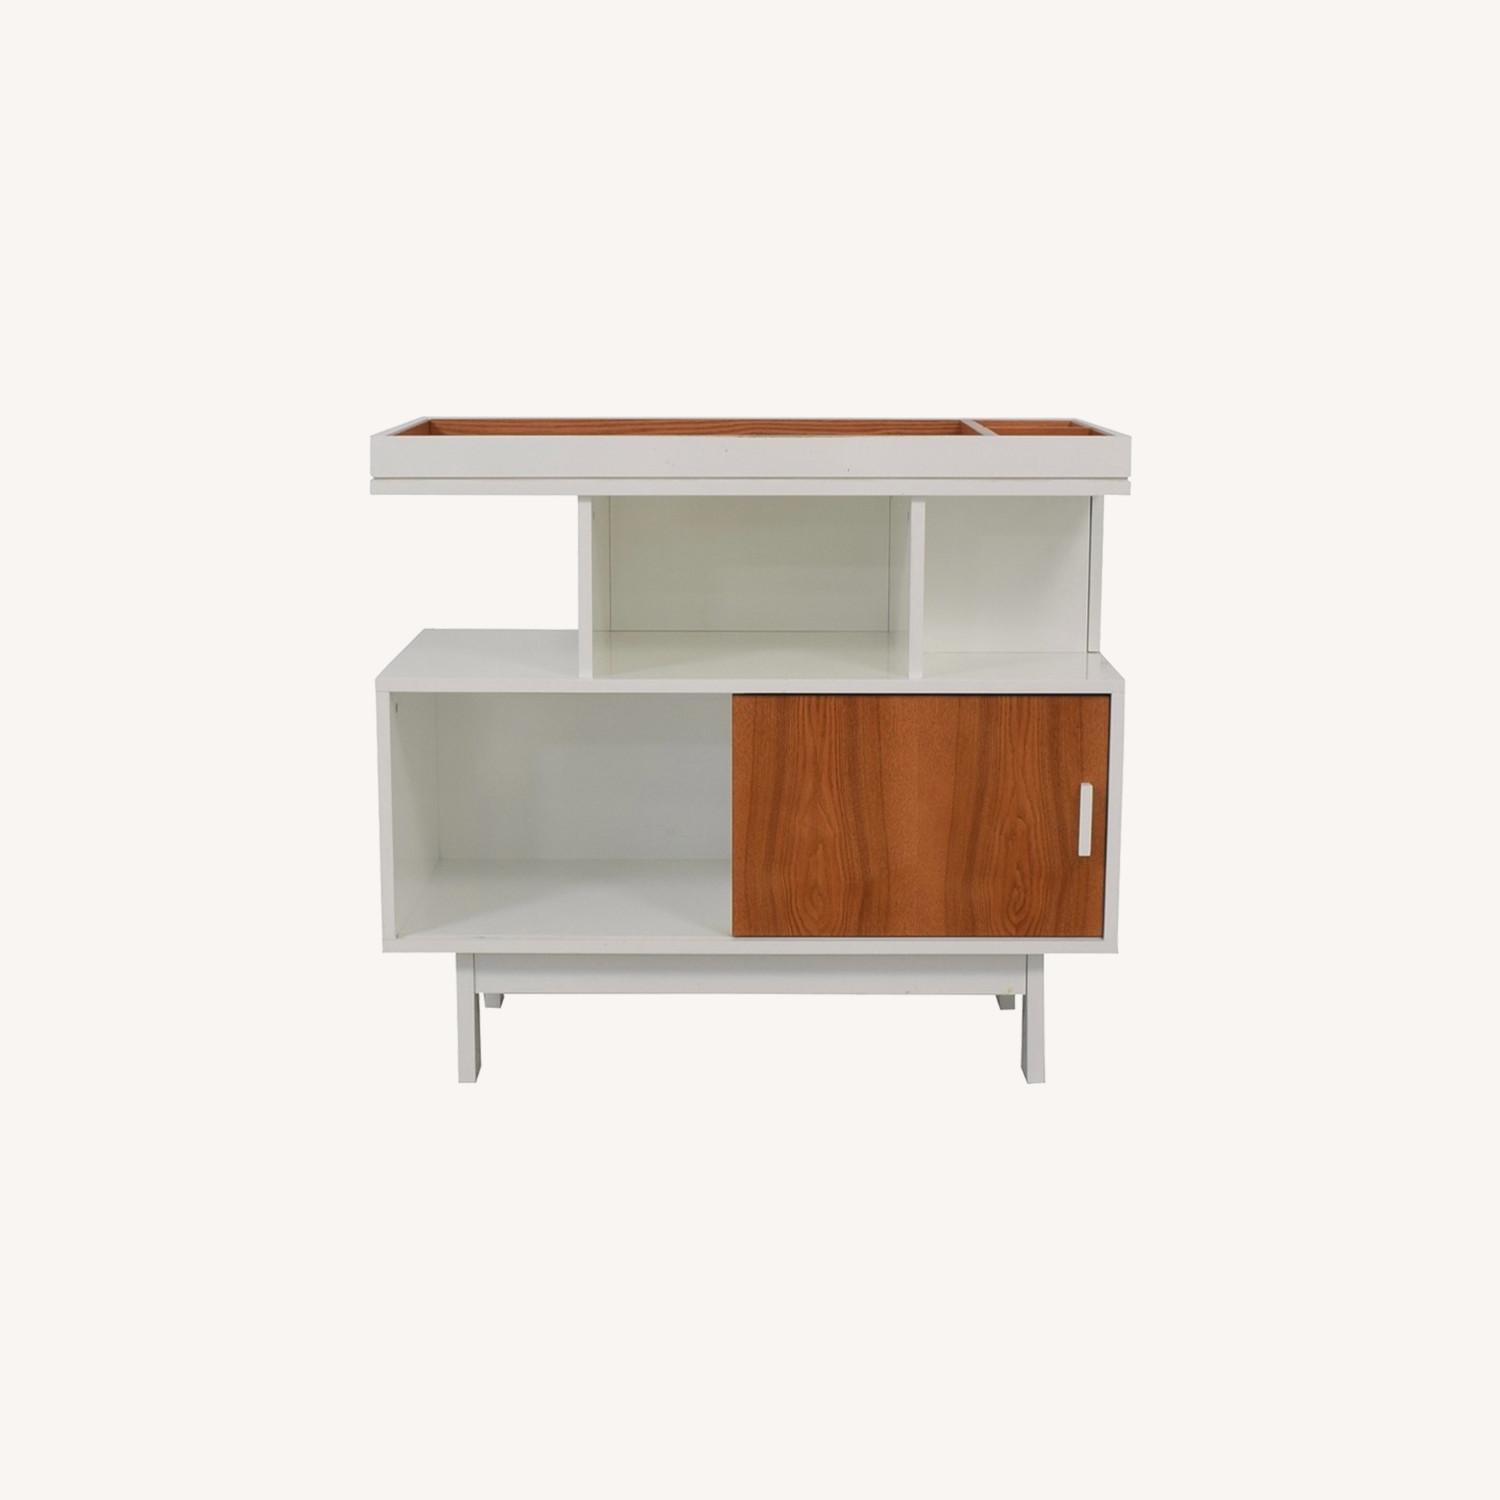 David Netto Changing Table - image-0